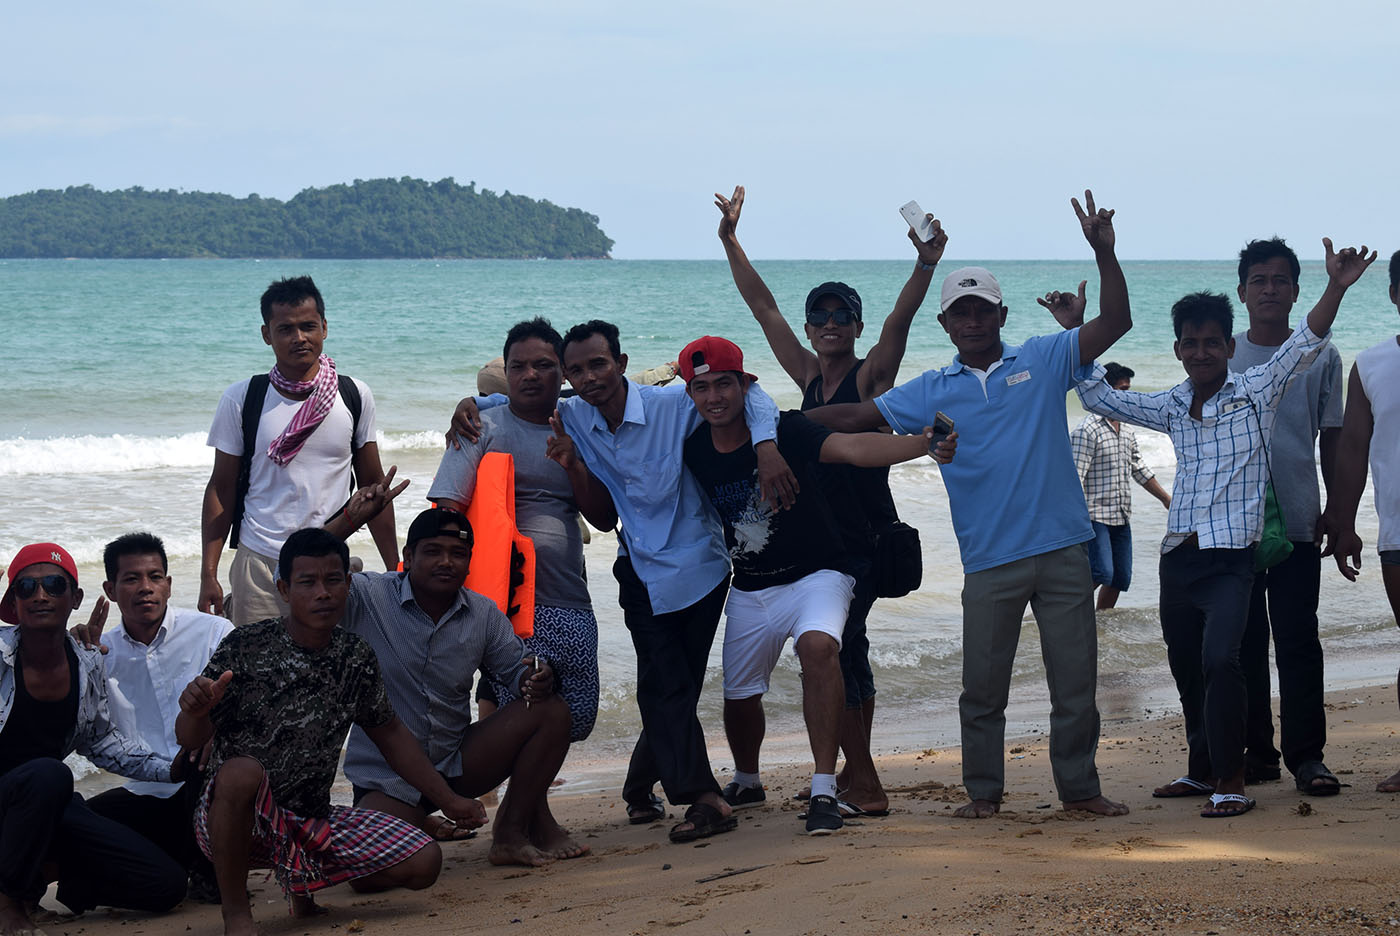 WMF Angkor team enjoying the beach, February 2017